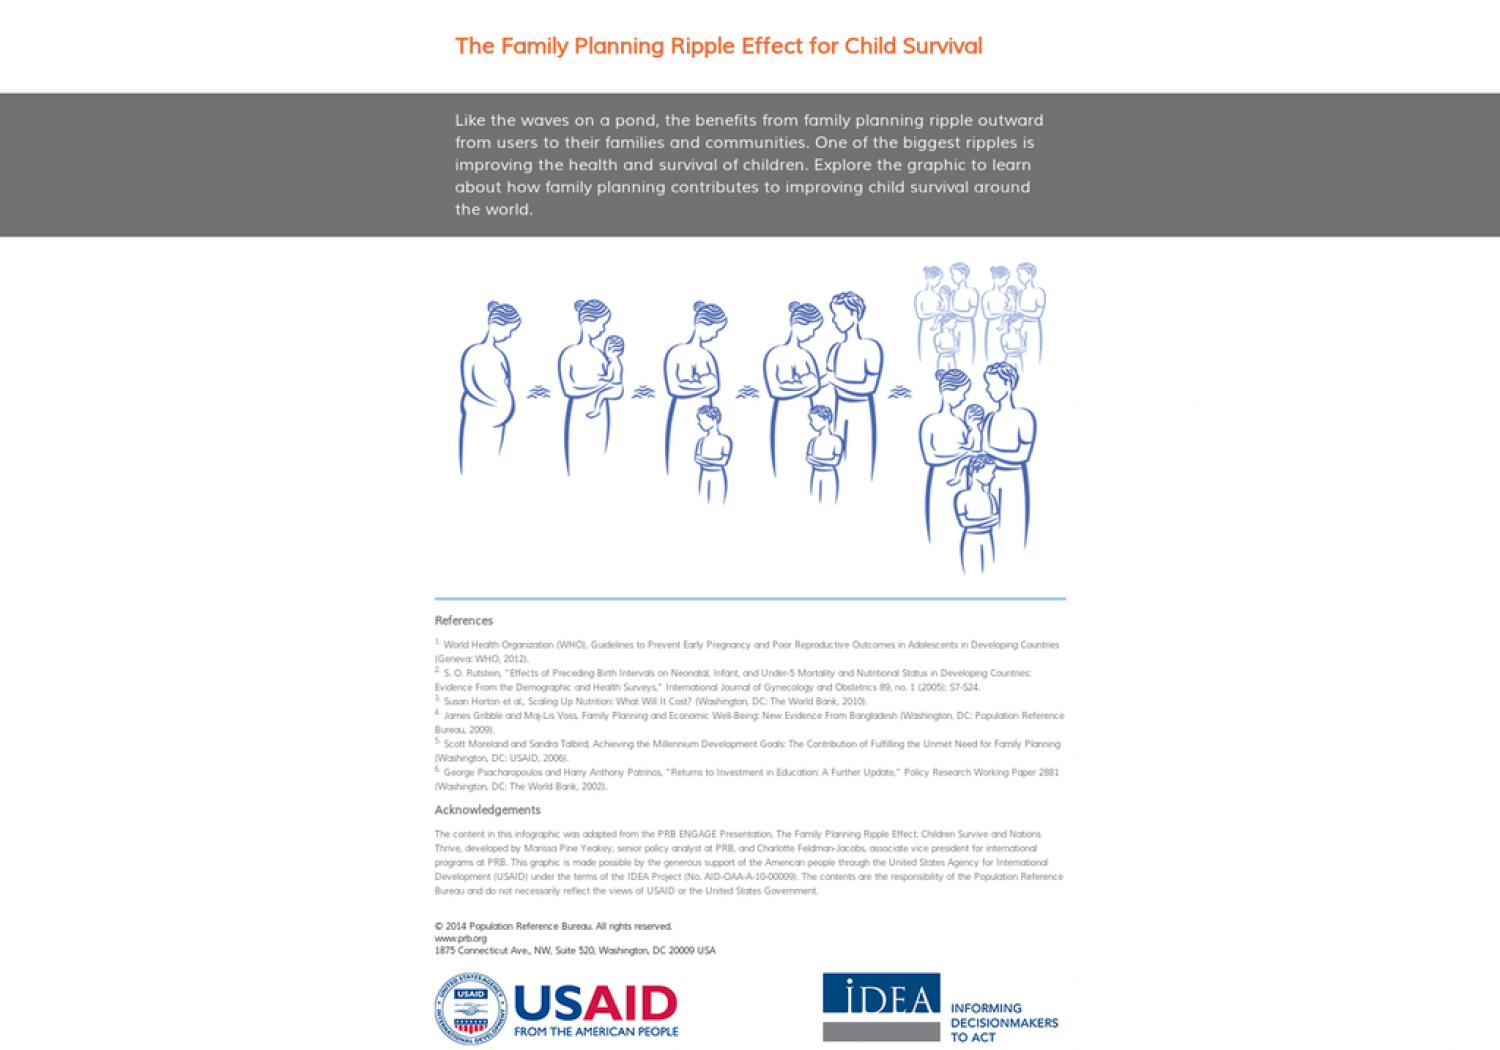 The Family Planning Ripple Effect for Child Survival Infographic